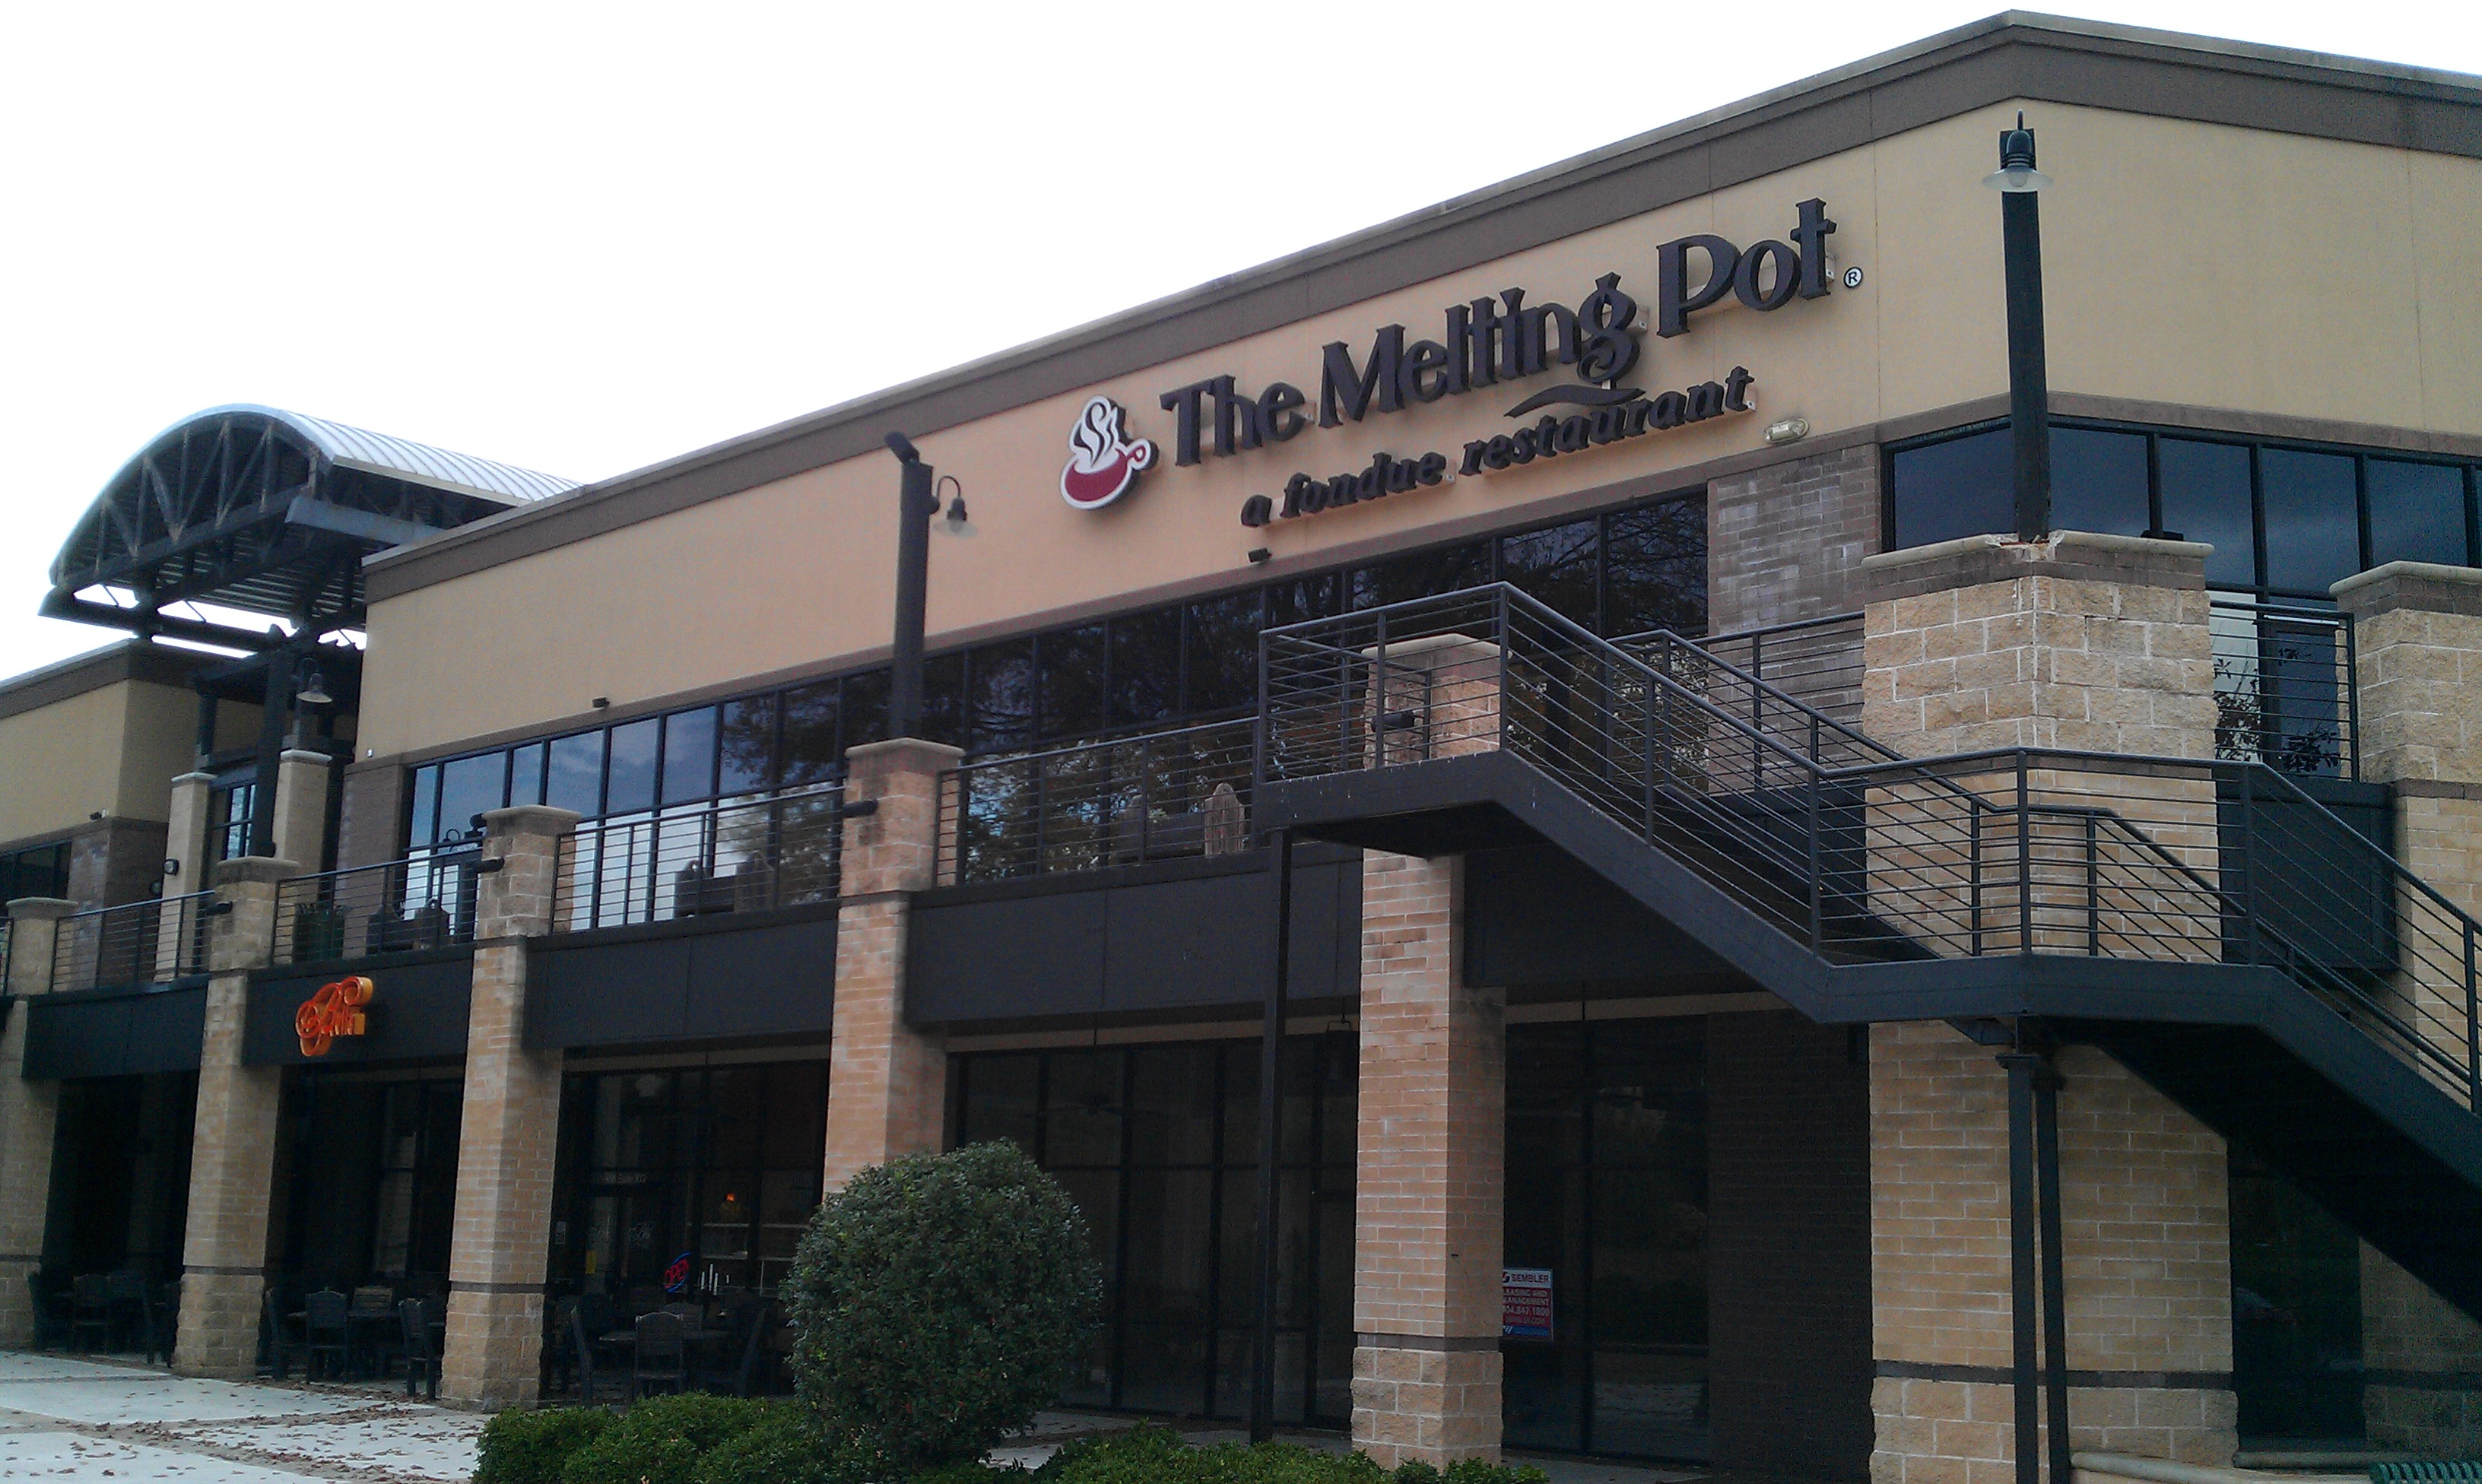 The Melting Pot in Birmingham, AL